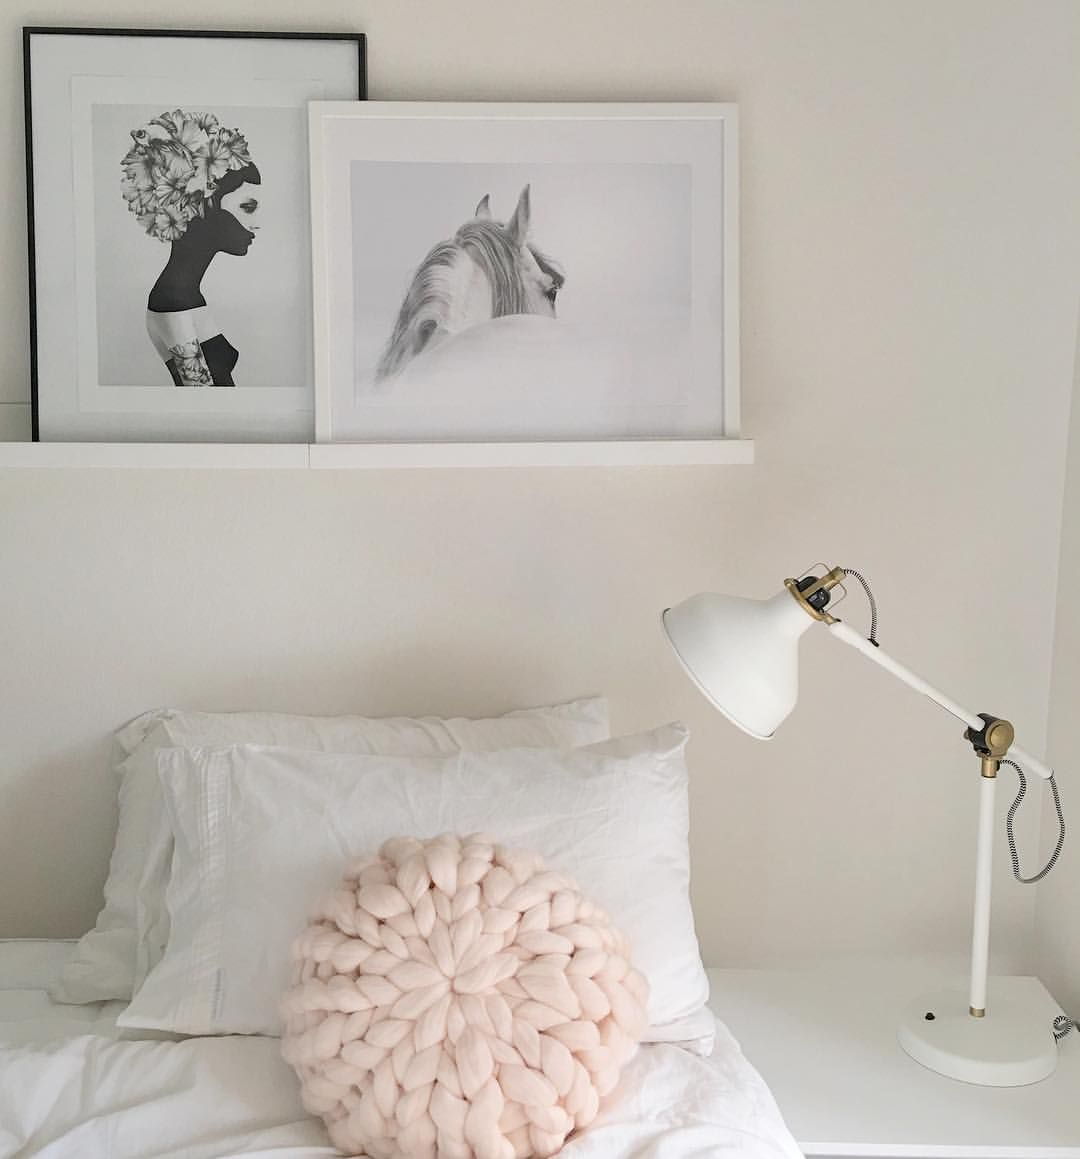 Pin by ee zhang on 家居抱枕 in pinterest bedroom cushions